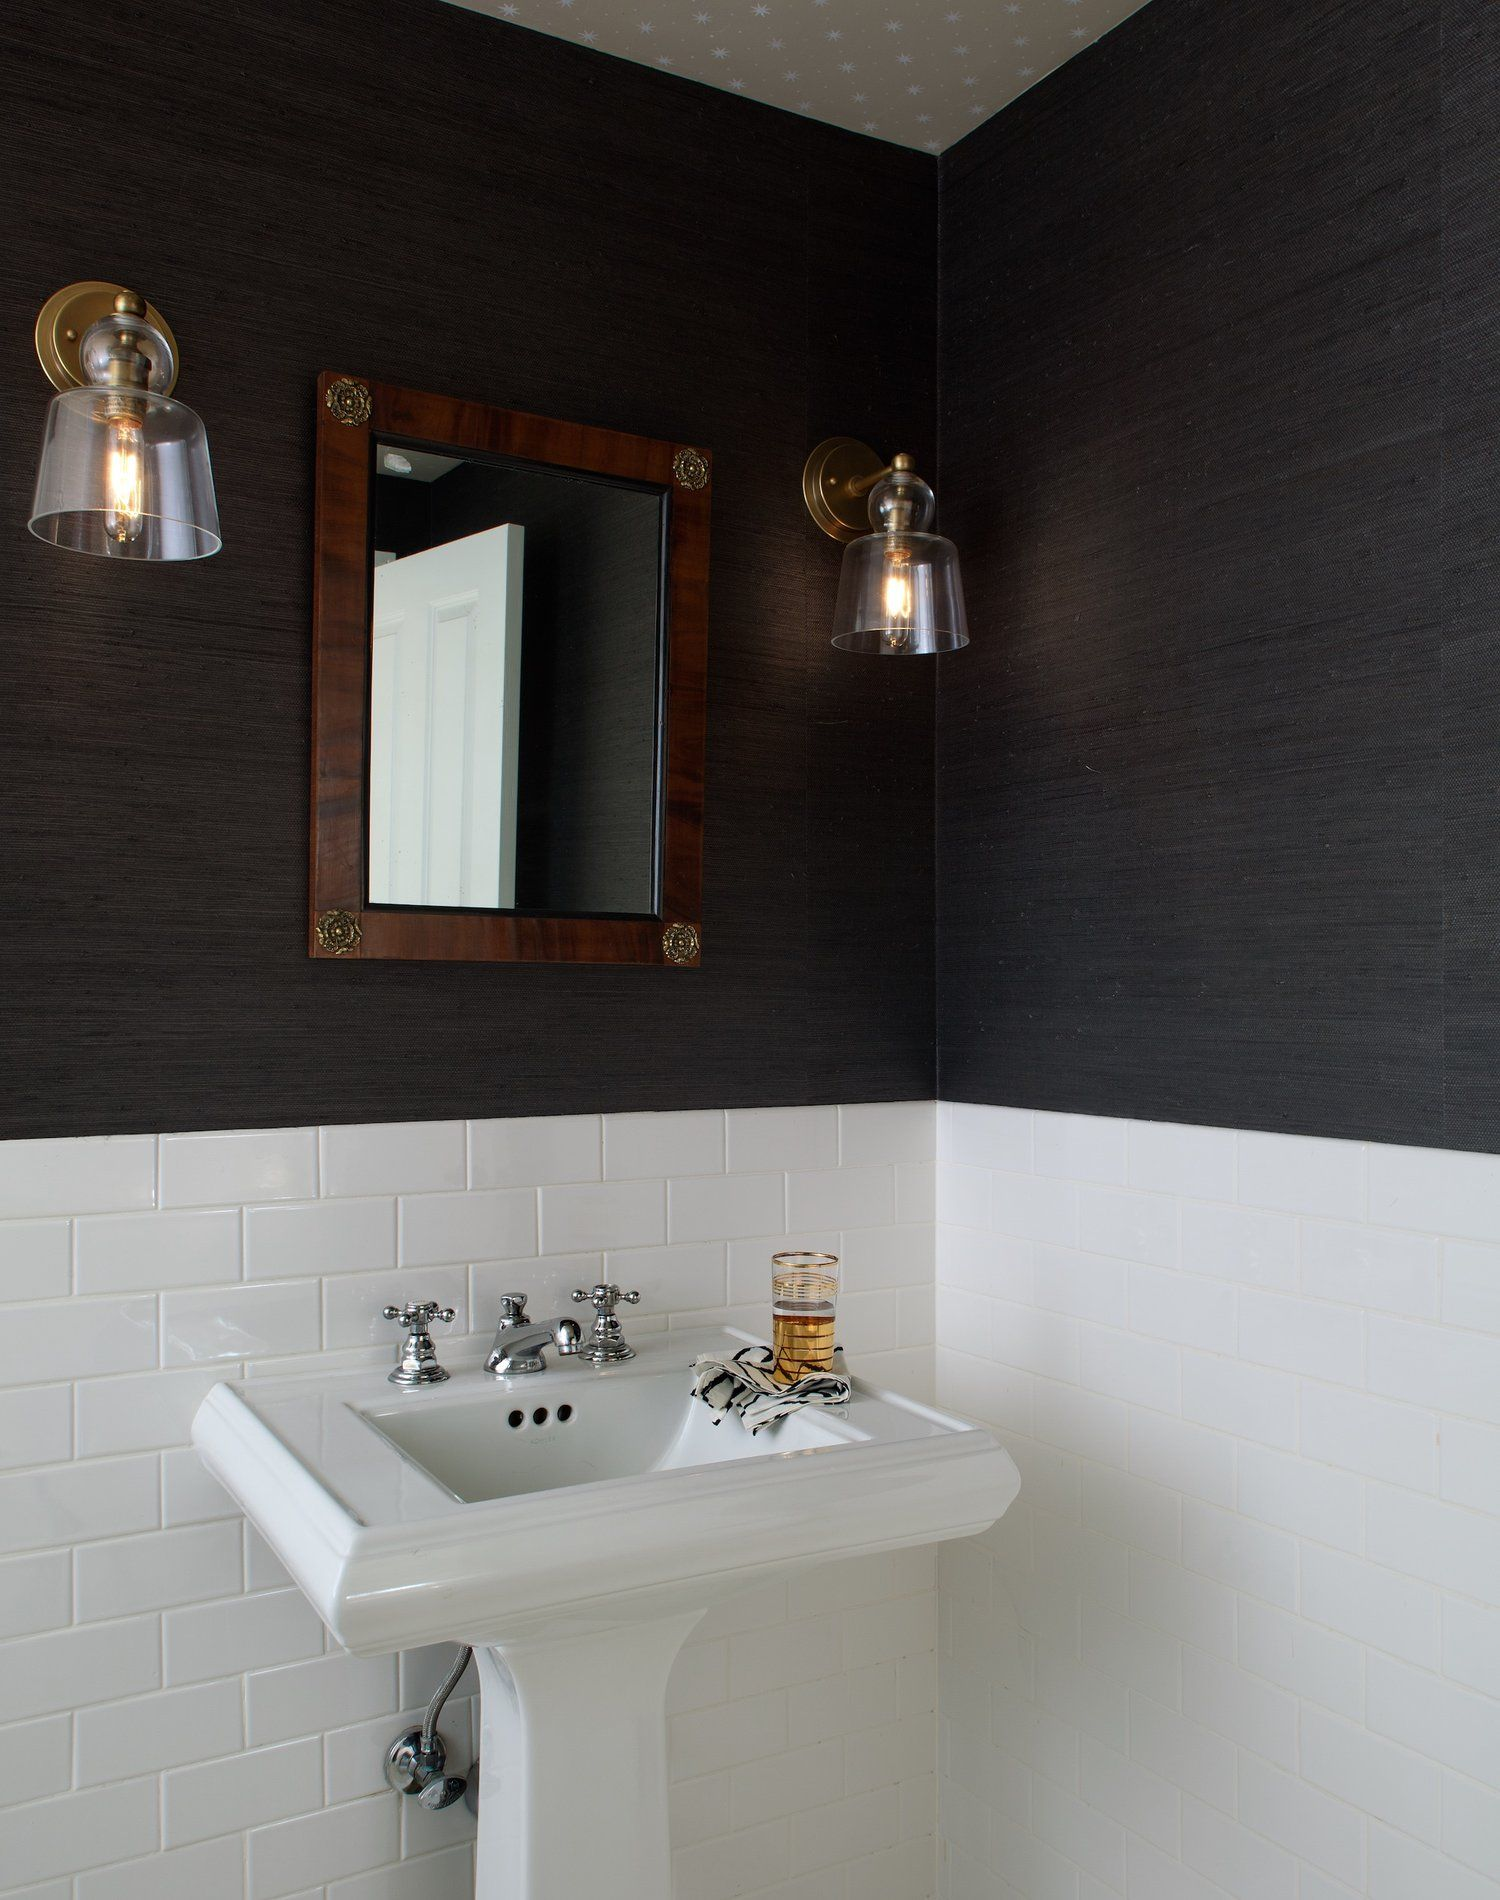 Powder Room By Amy Kartheiser Design: Classic Powder Room Design With Half White Subway Tile And